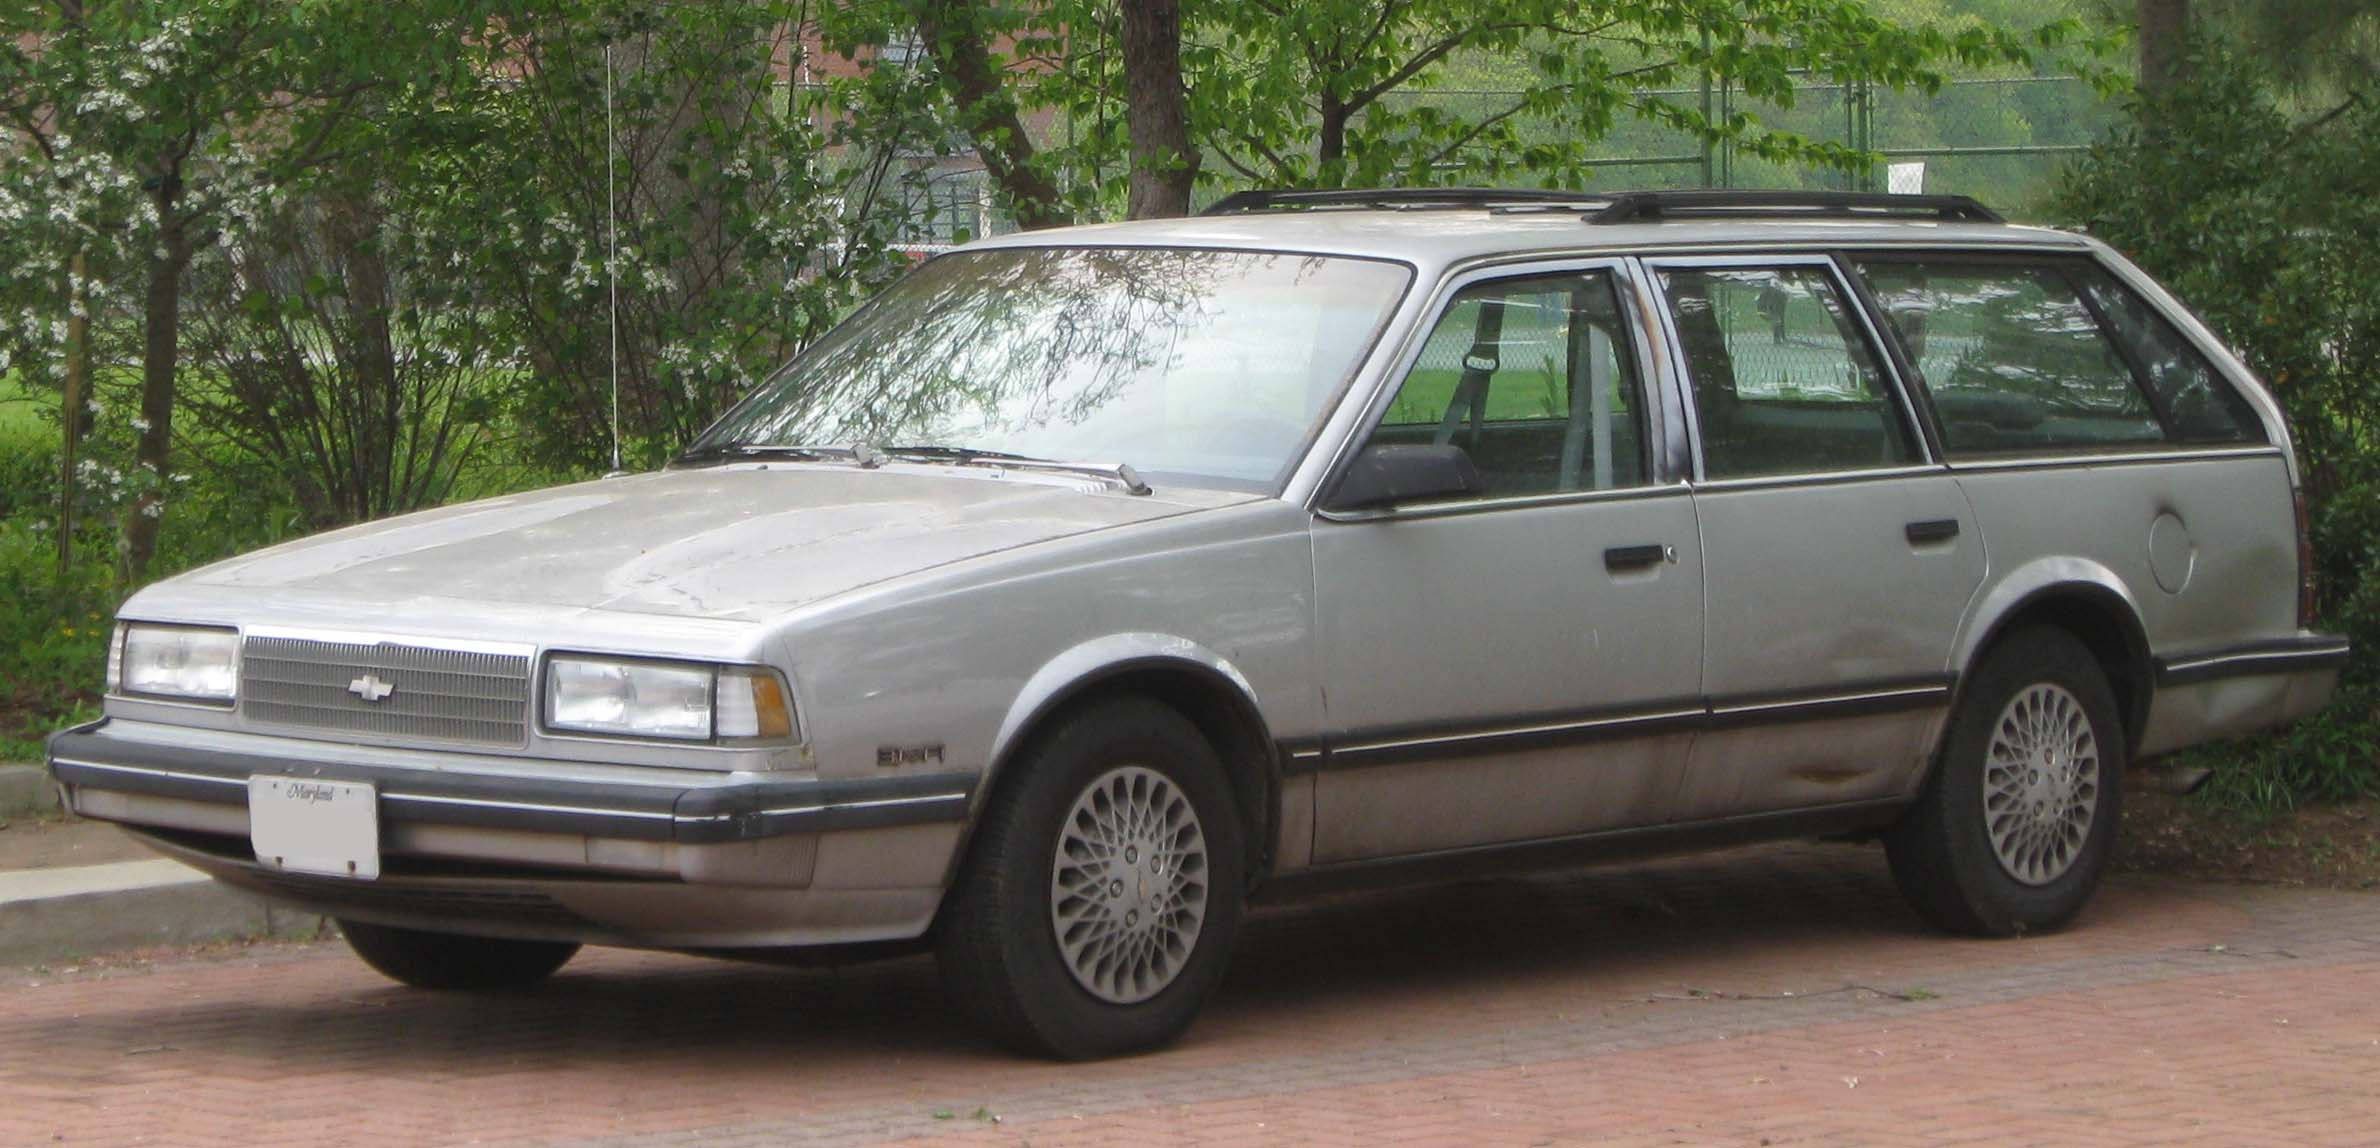 File:1990 Chevrolet Celebrity 3.1 wagon front -- 04-20-2010.